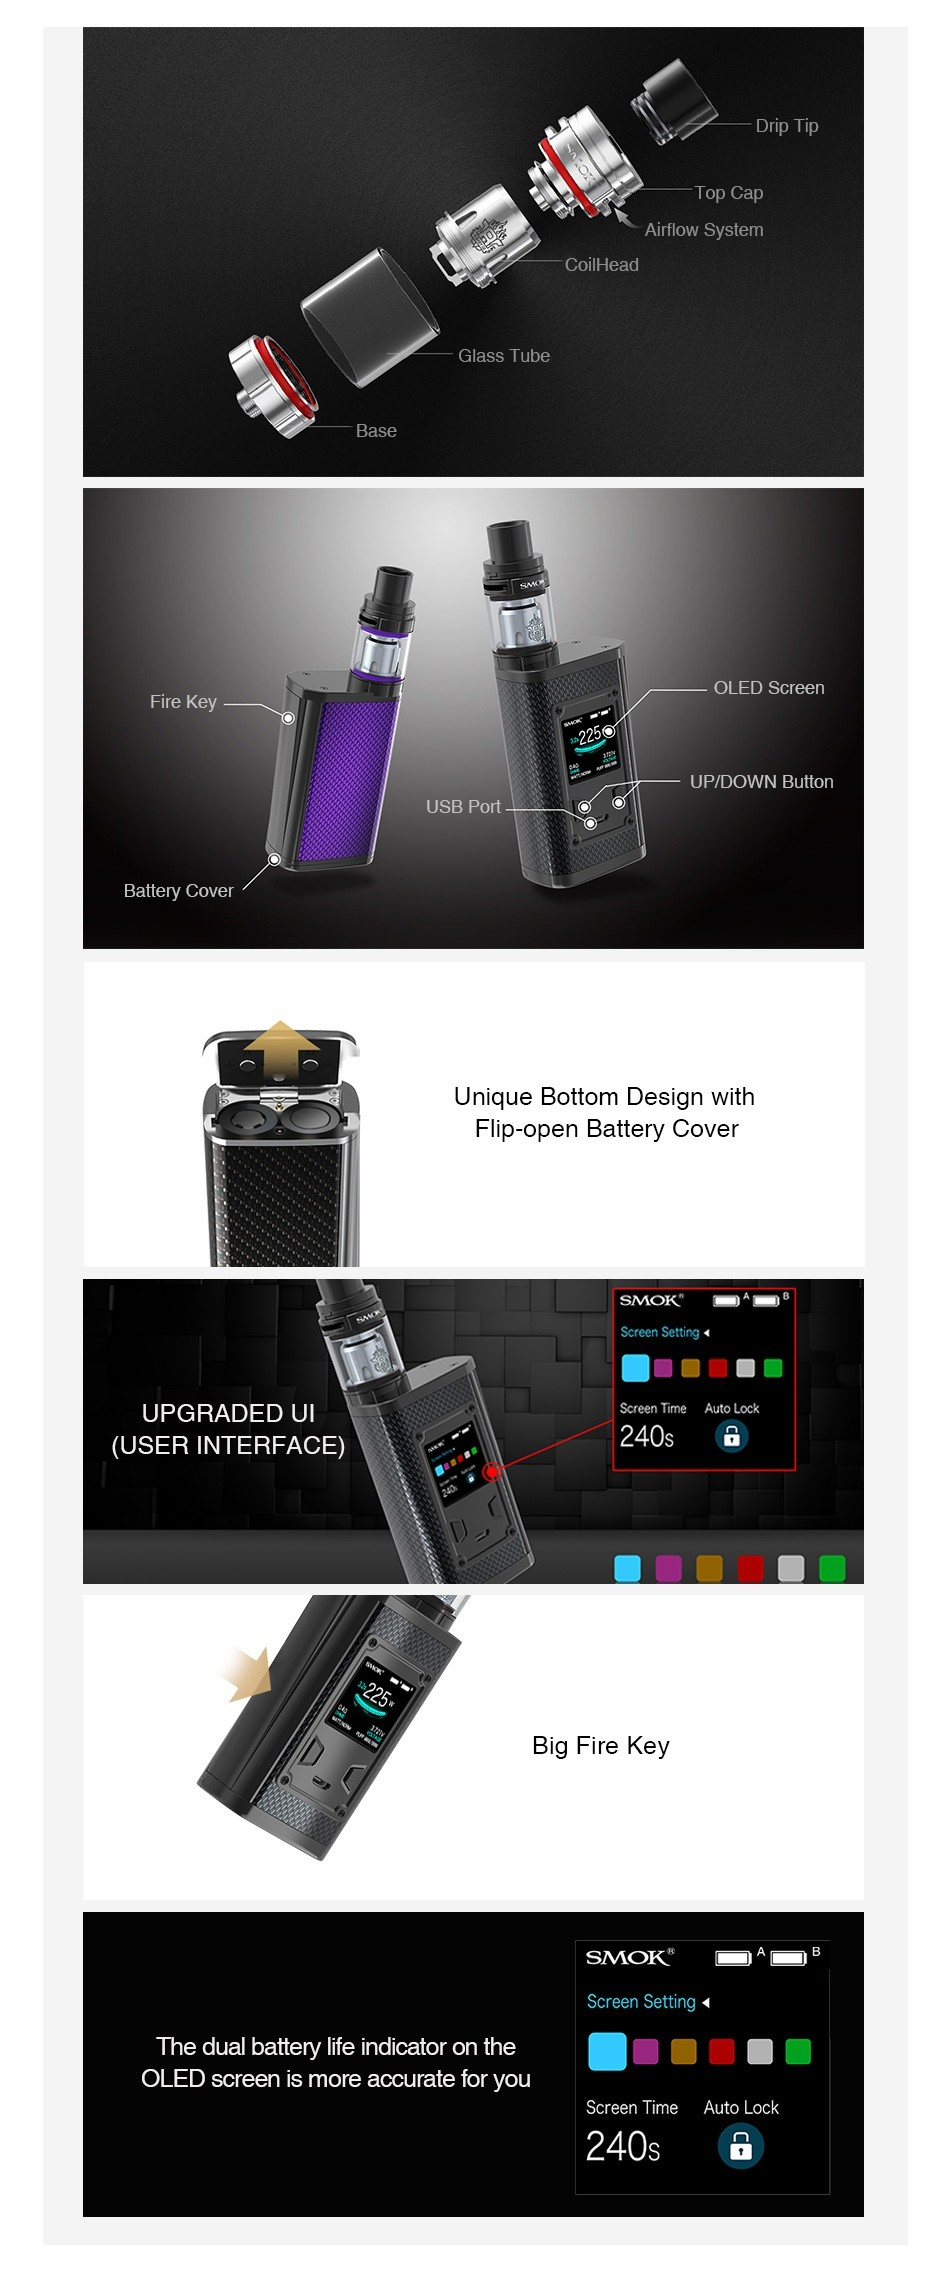 SMOK Majesty 225W TC Kit with TFV8 X-Baby rip T ip Top Cap Airflow System Base OLED Scr UP DOWN Button Battery covel Unique bottom Design with Flip open Battery Cover SMOK        UPGRADED UI Screen Time Auto Lock  USER INTERFACE  Big Fire Key Screen Setting 4 The dual battery life indicator on the OLED screen is more accurate for you Screen Time Auto Lock 240s